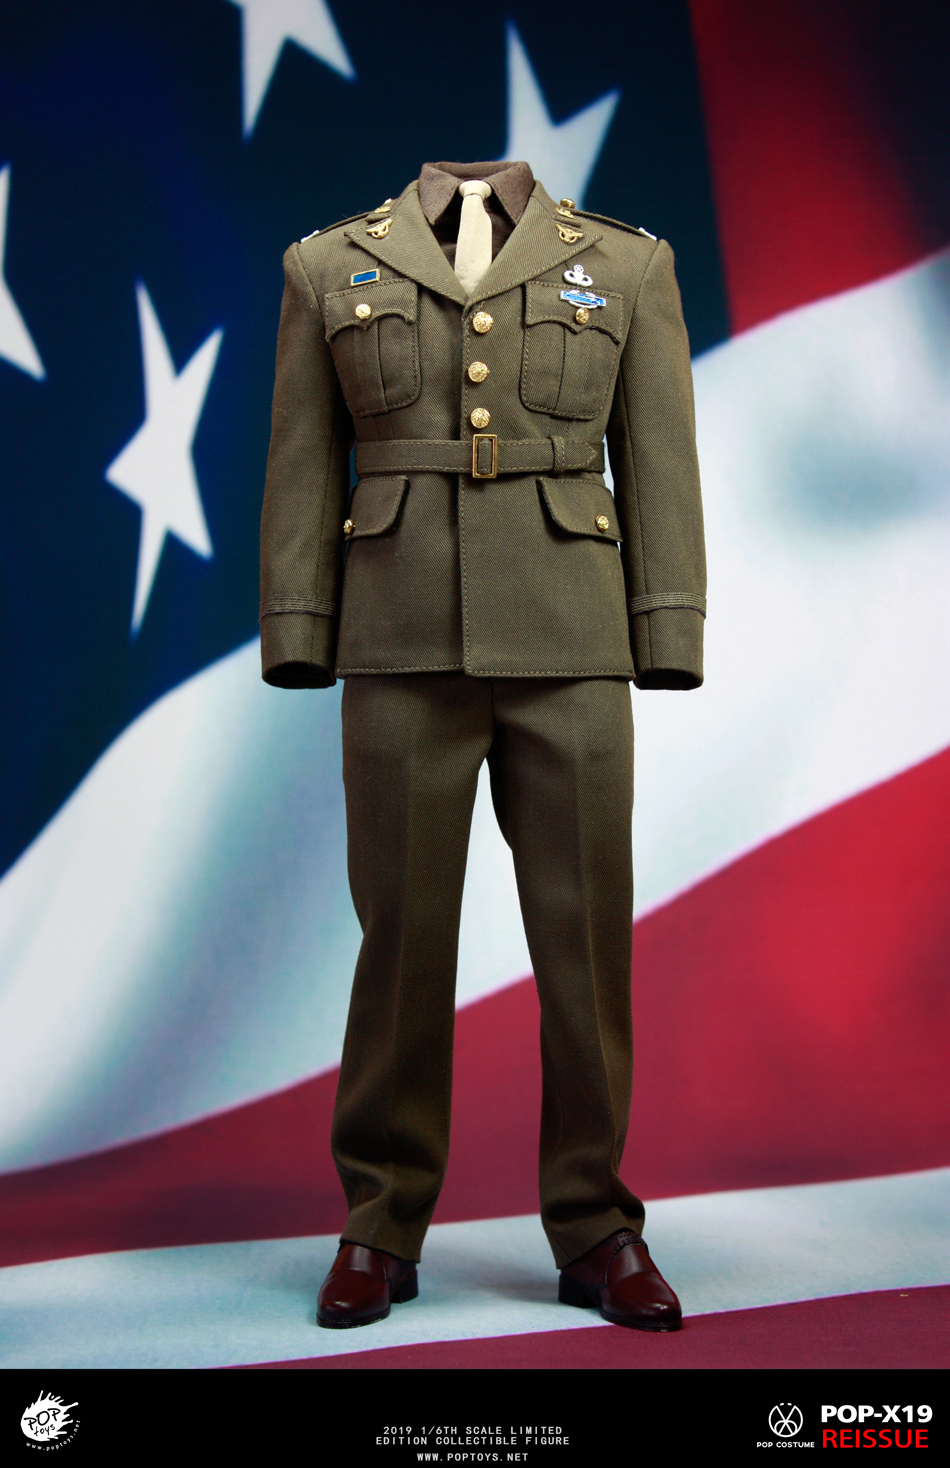 male - NEW PRODUCT: POPTOYS: 1/6 Series X19 World War II Edition Golden Age US Team Uniform Uniform Set - 19 Years Reprint 15021710